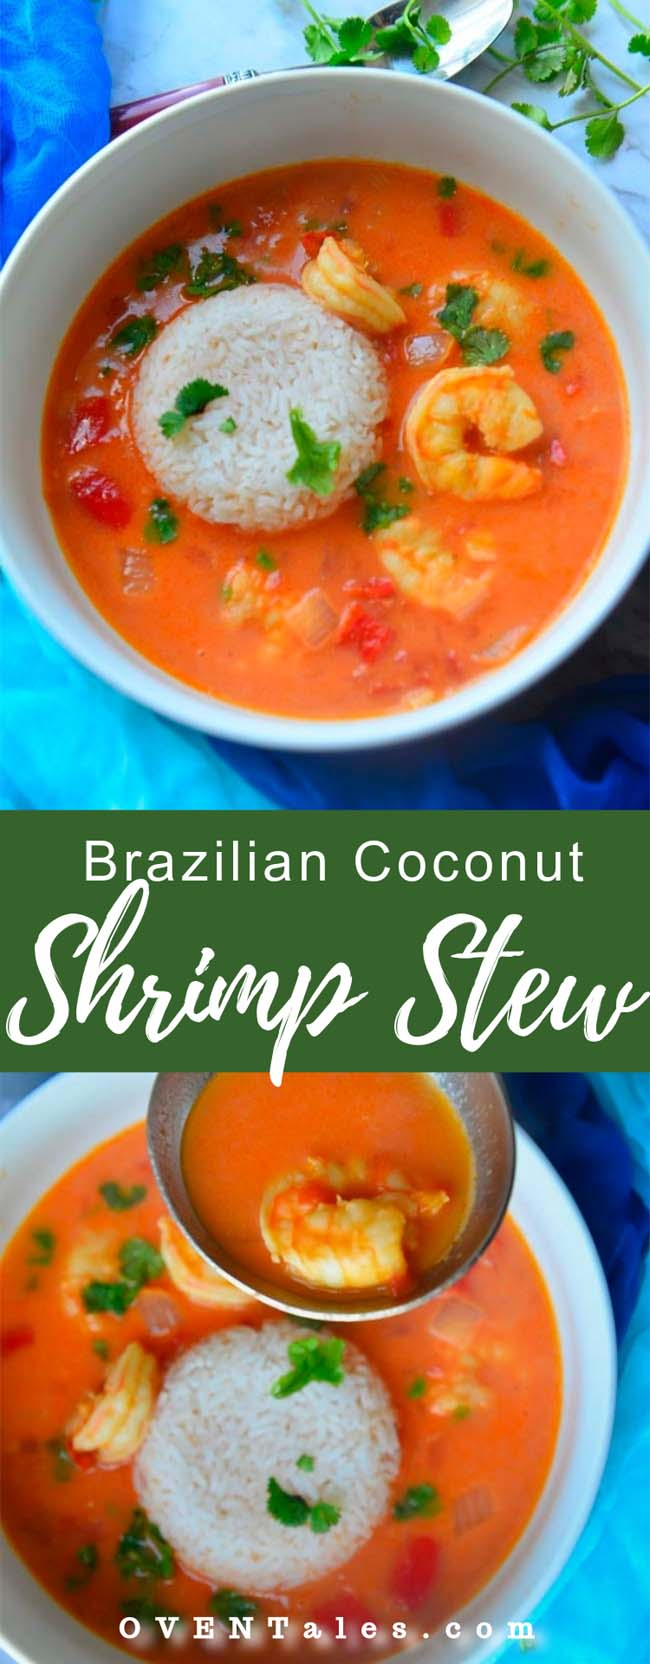 Moqueca de Camarones - The brazilian Style Coconut Shrimp Stew